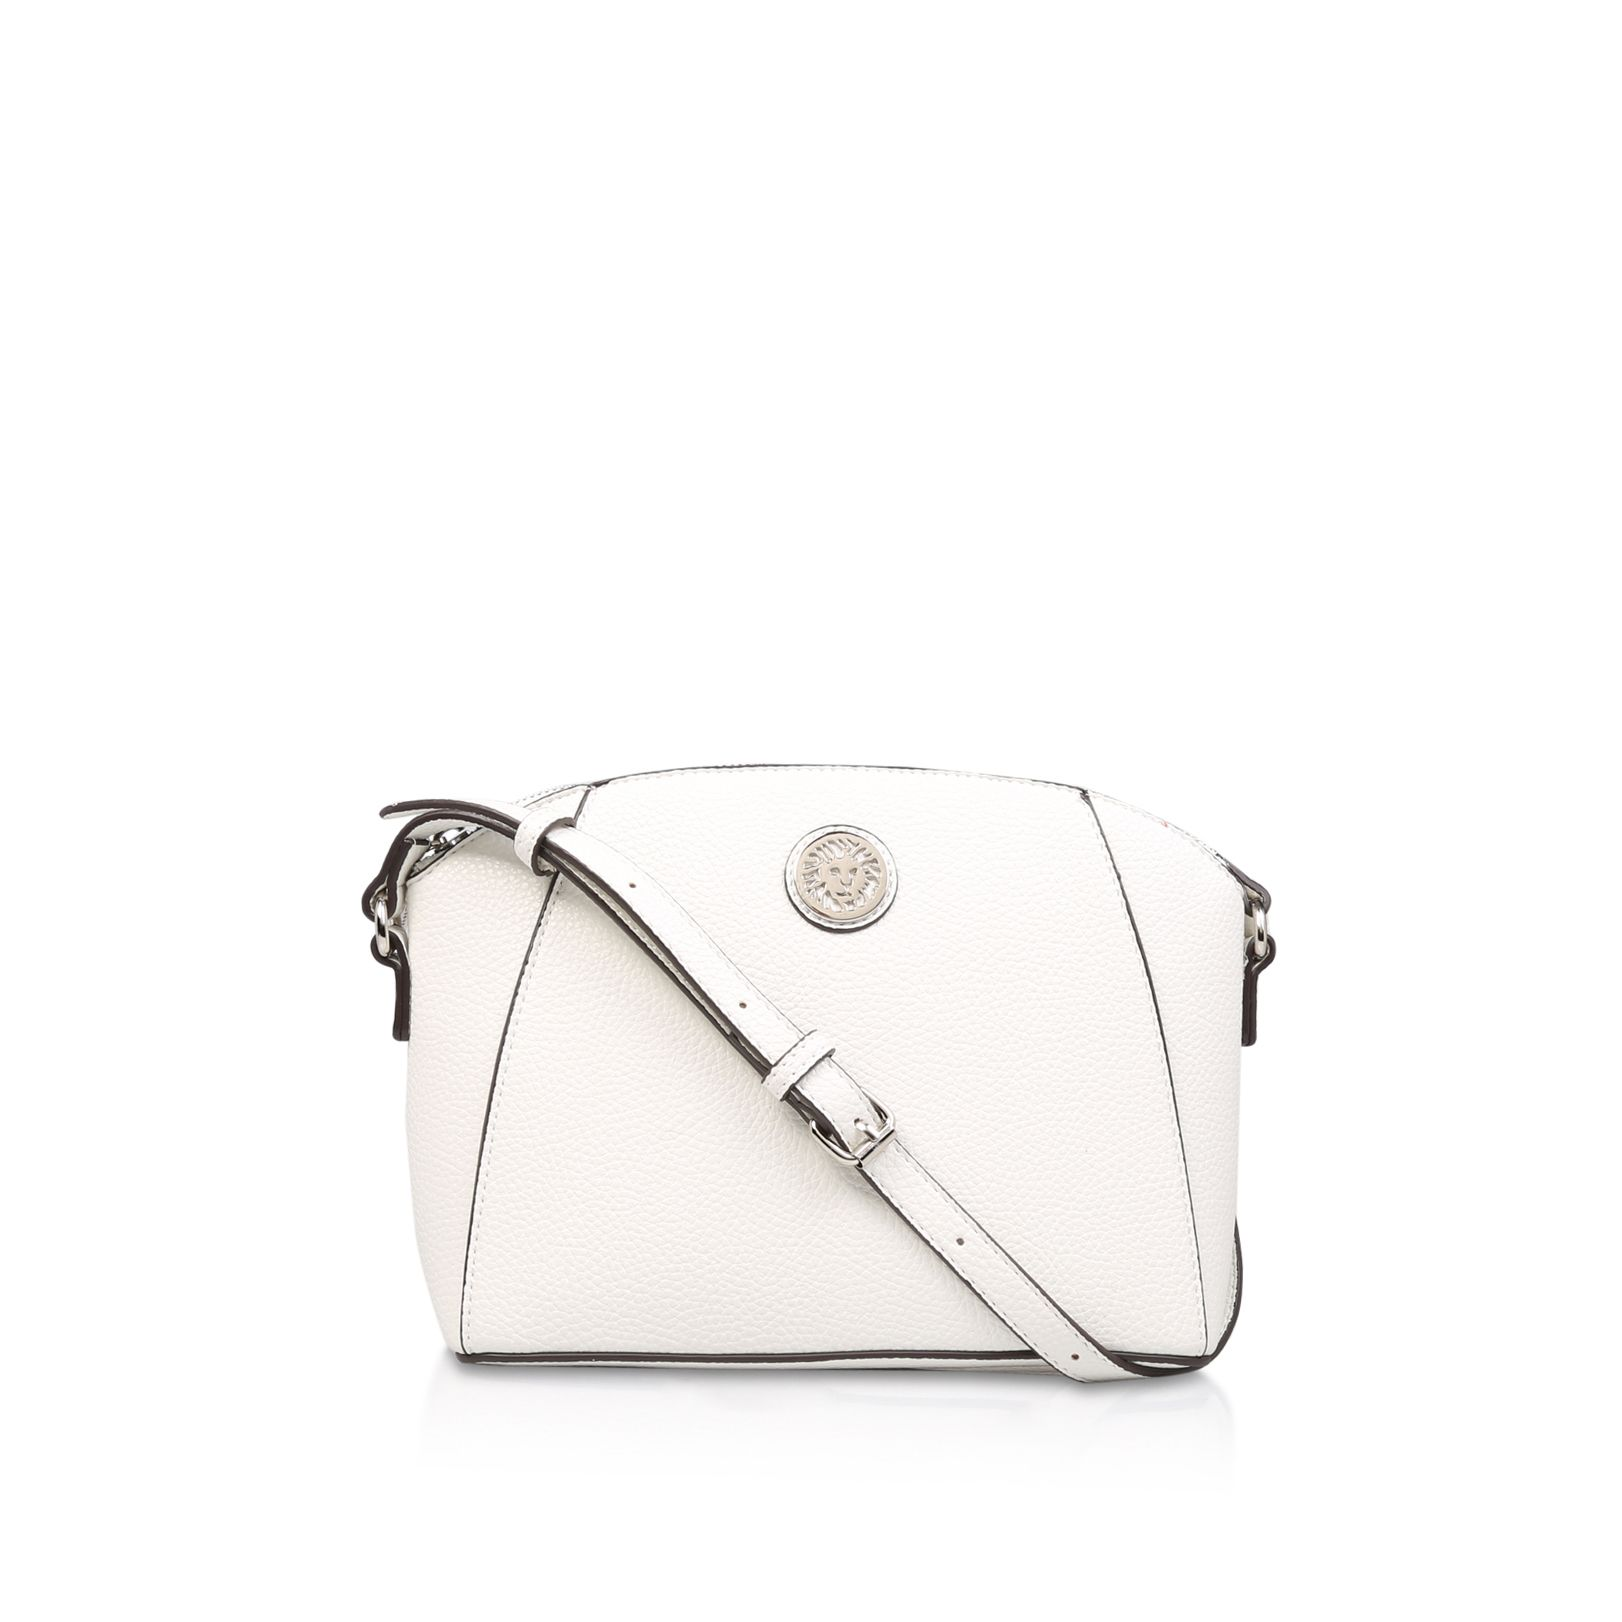 Anne Klein Classic Curves Crossbody Bag, White